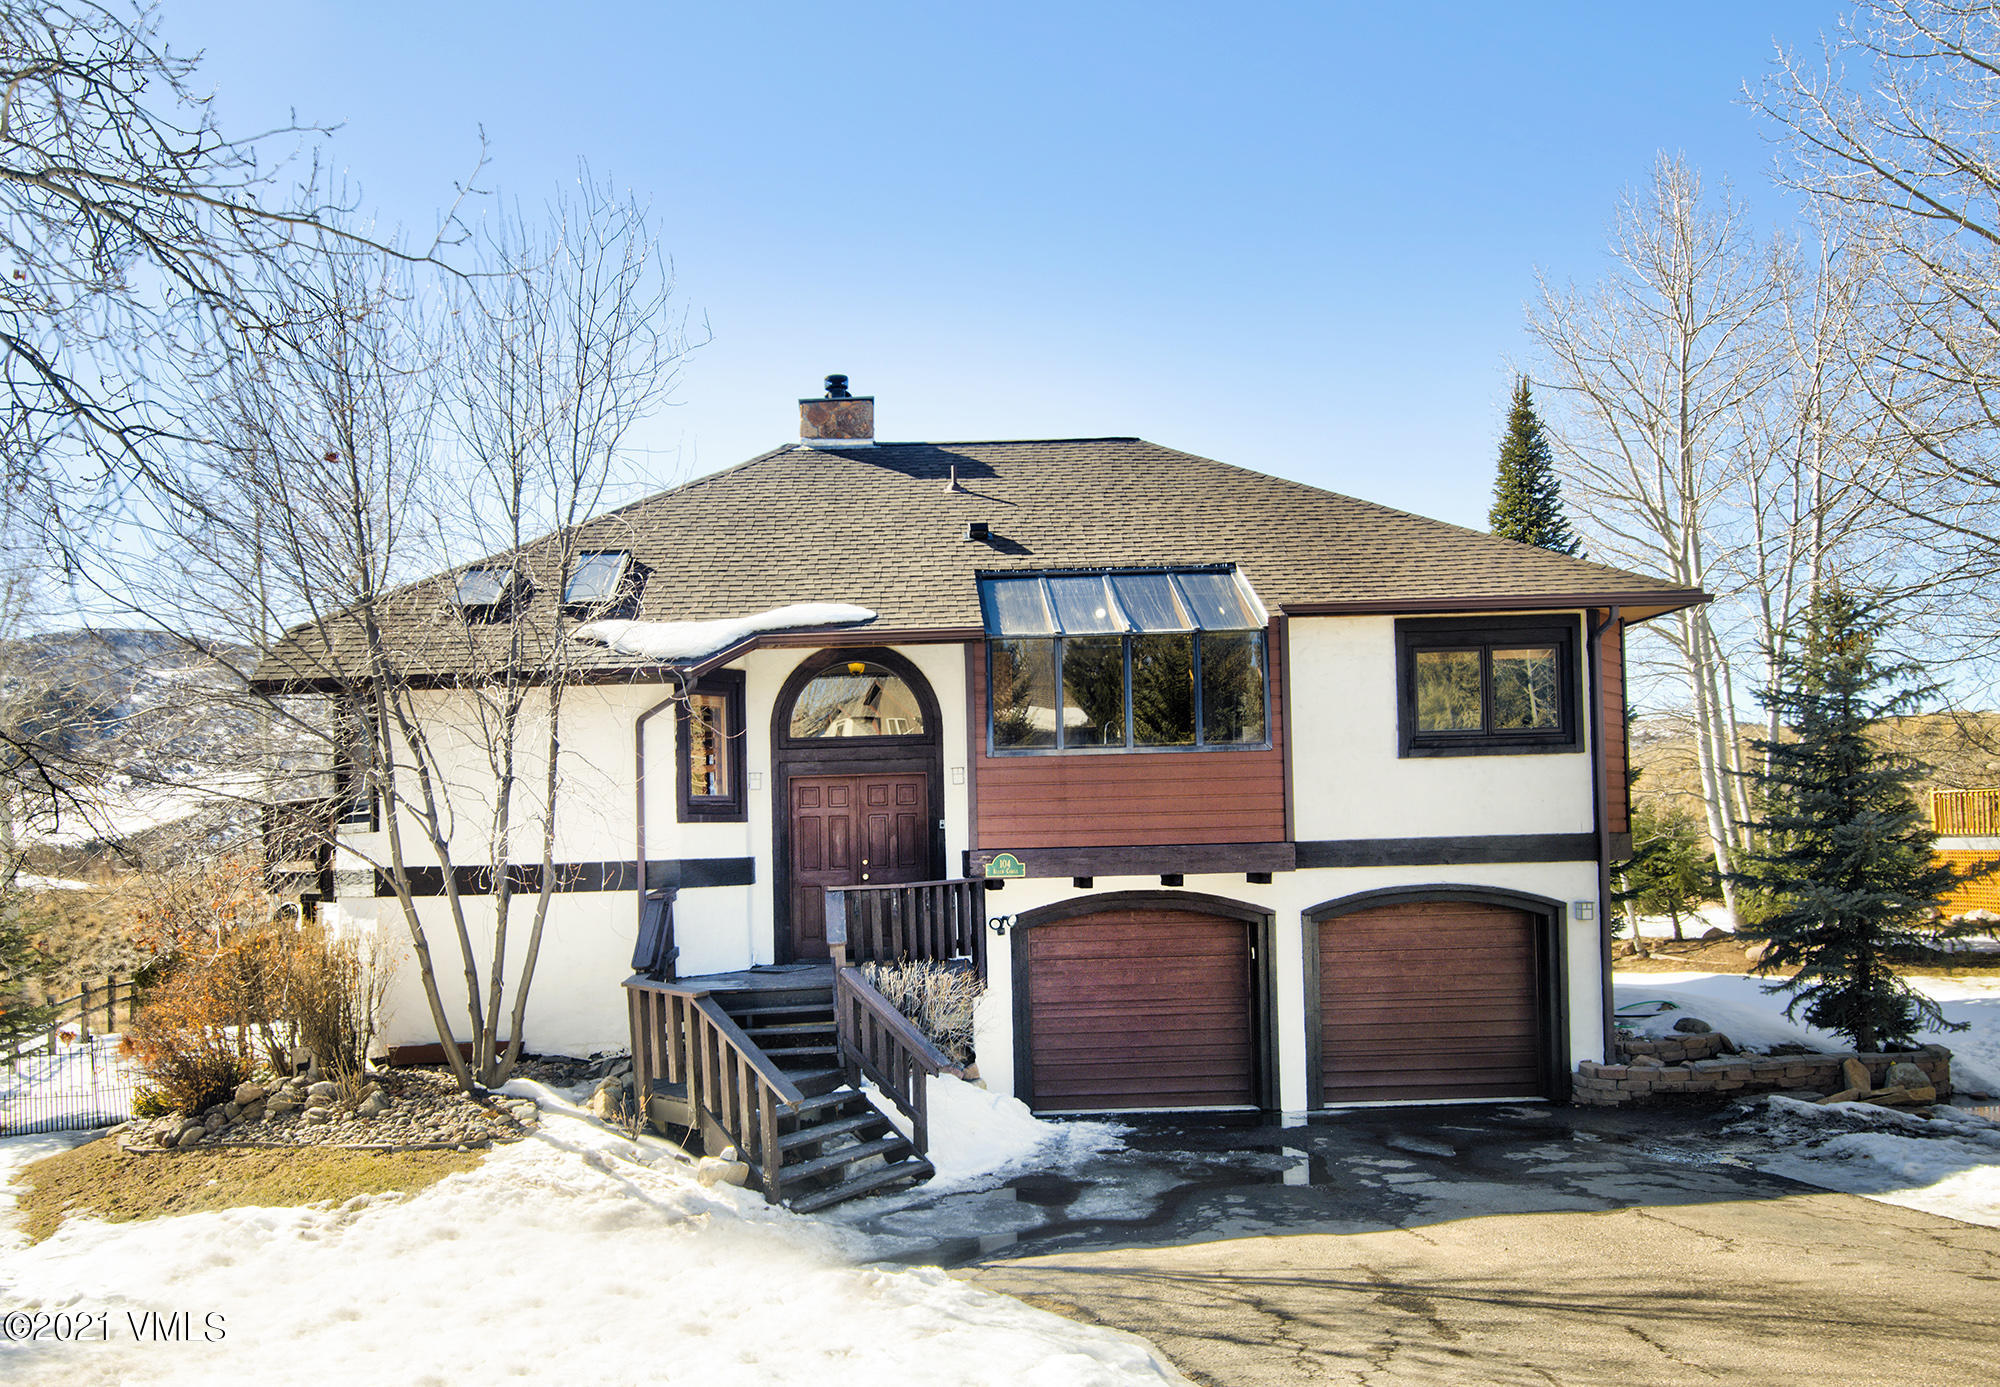 This is a unique opportunity to purchase a single-family home on a coveted lot, steps from the Homestead Court Club.  The property borders private ranch space and features a 2nd story deck with wide mountain views from Castle Peak to the Sawatch Range.The main level features a large great room and a stone chimney centerpiece with a gas fireplace on one side and a gunmetal pot-bellied wood stove on the other.  The large great room boasts high vaulted ceilings, lots of natural light, a charming loft, and convenient access to the wrap-around 2nd story deck.  The great room opens to the dining room and the adjacent updated kitchen.  The main level also features a primary bedroom and primary bathroom, a second bedroom, and a second full bathroom.  The primary bedroom opens to the back deck with a view of New York Mountain.  The primary bathroom features two sinks and an oversized double-headed shower, finished with stone, tile, and glass block.  The ground level of the home includes an oversized 2+ car garage plus workshop area, large laundry room with storage space, convenient access to the fenced-in backyard, and an appealing guest suite.  The suite features a third bedroom, well-appointed 3/4 bath, and family room (which could be converted to a 4th bedroom) that opens to the patio and fenced backyard. Do not miss this amazing opportunity to call this one-of-a-kind property home!